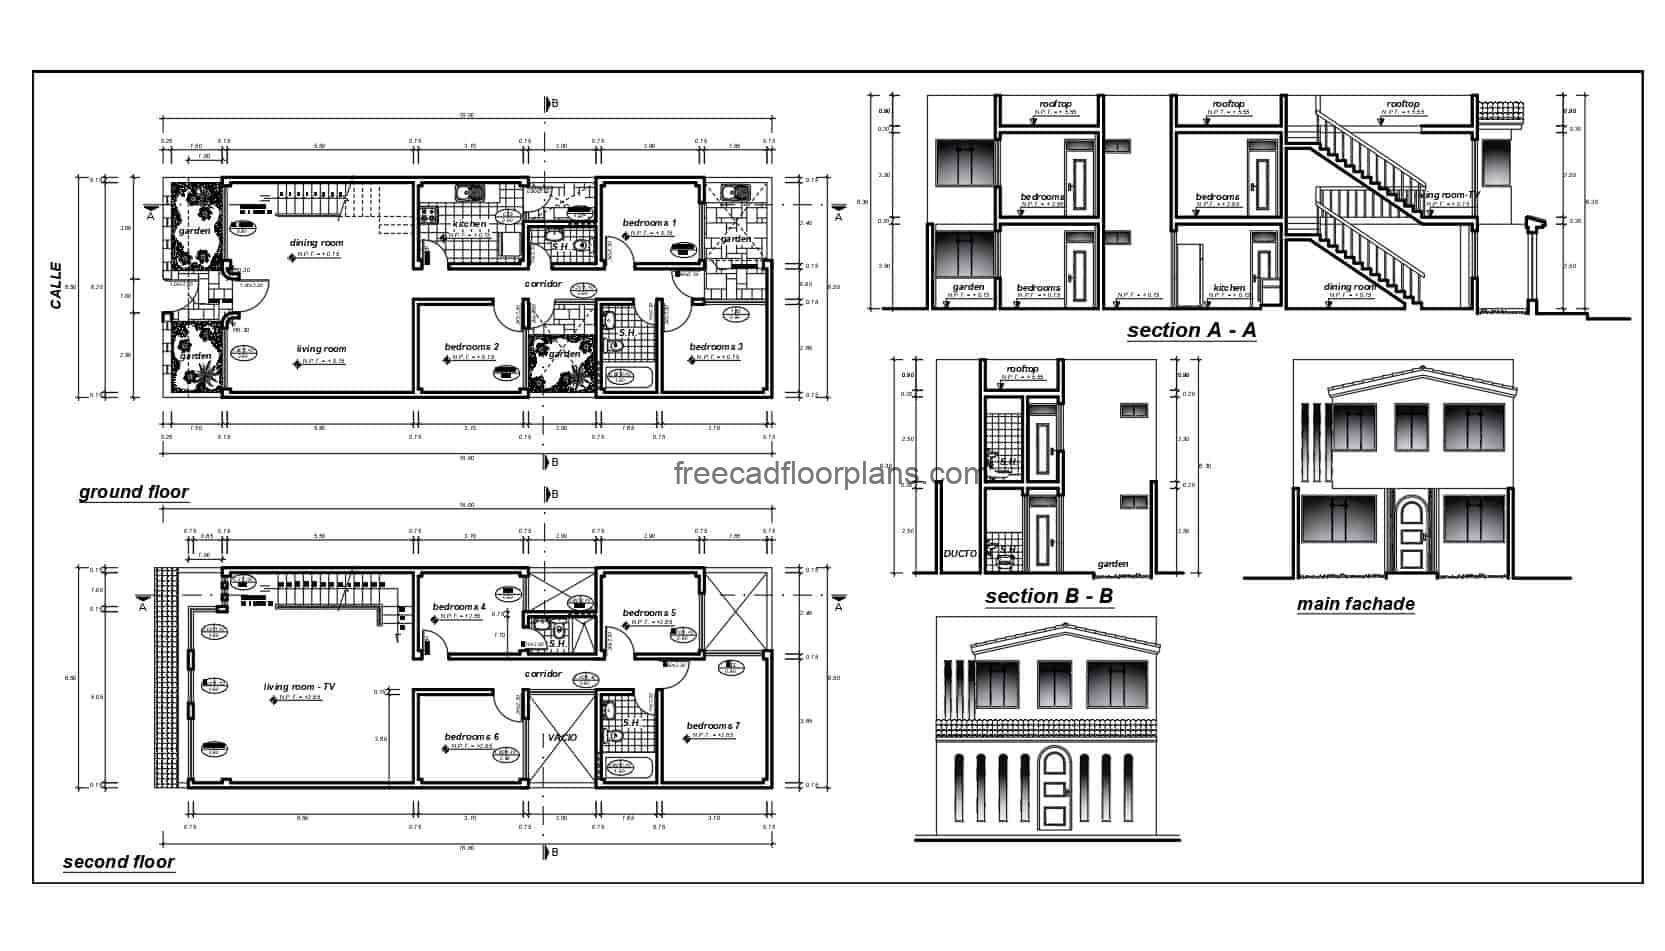 Architectural and dimensional plans with facade elevations and sections designed in Autocad DWG format of a two-level elongated rectangular residence with seven rooms in total. Residence has front gardens, living and dining room side by side, separate kitchen, interior garden, two bedrooms and two bathrooms on the first level, on the second level has five rooms with two bathrooms and family room. 2D blueprints for free download, detailed plans with editable autocad blocks.